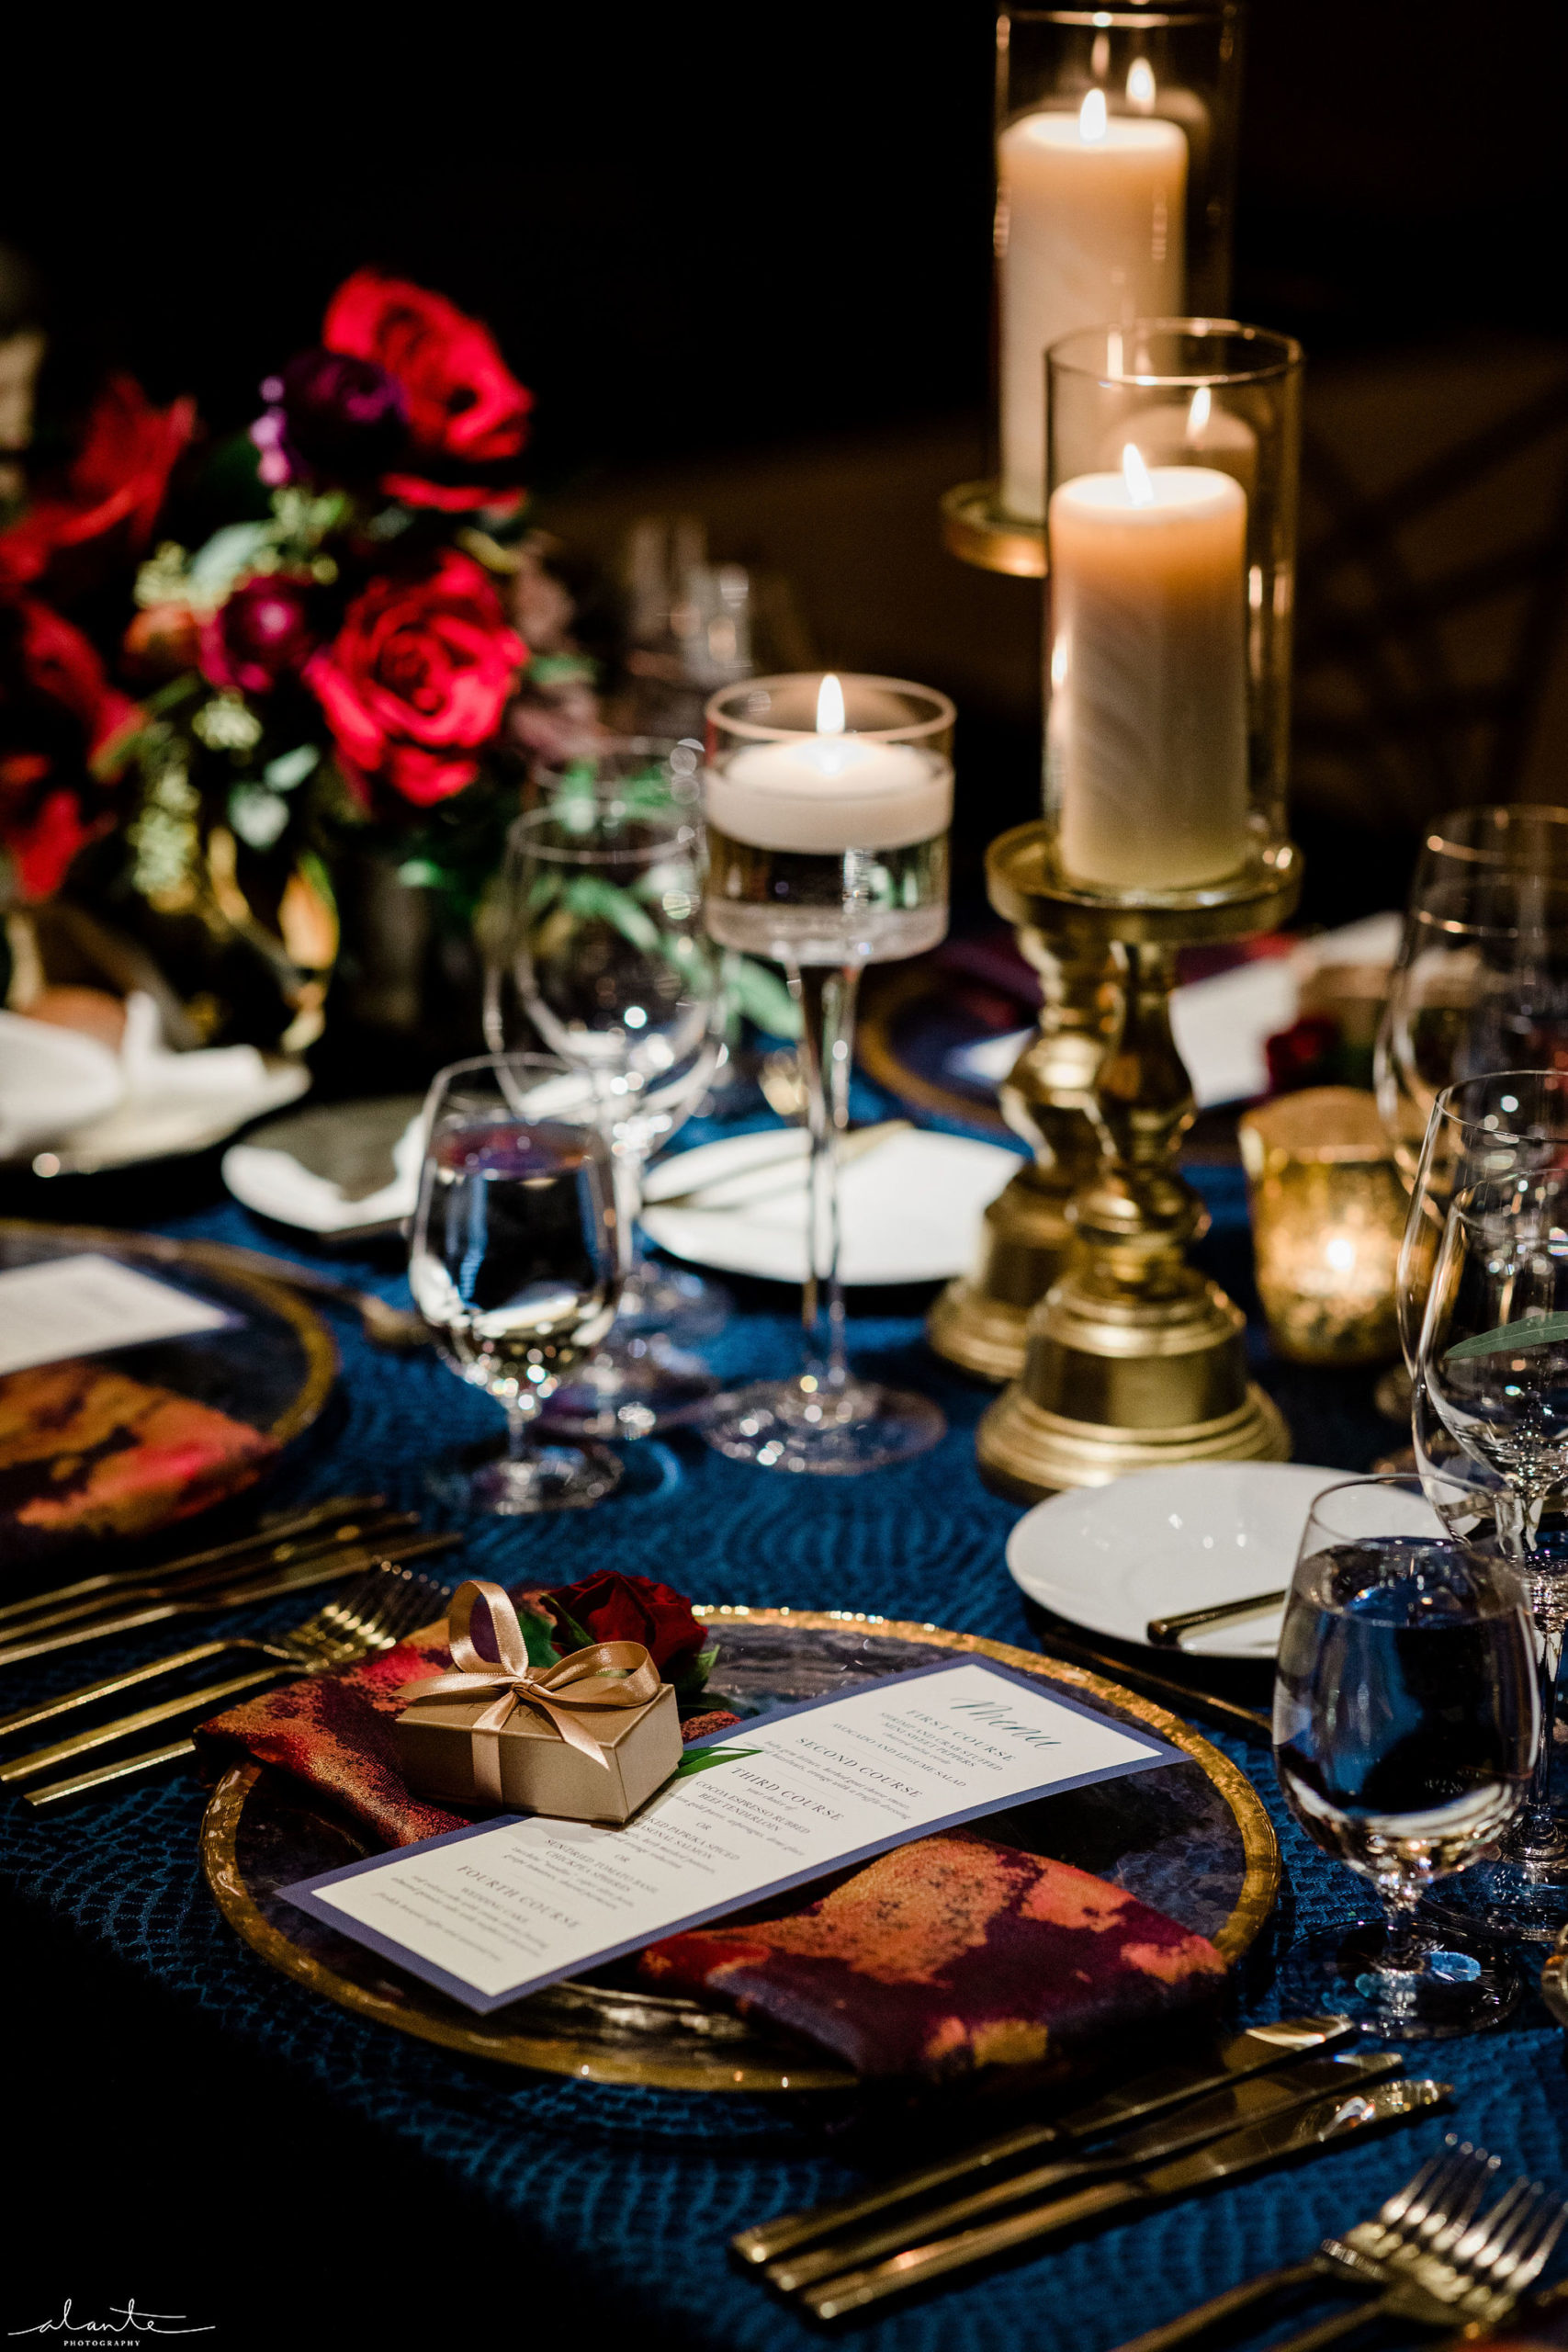 Winter wedding reception table setting of gold flatware and gold rimmed charger plate on navy linen with red rose floral and candles.